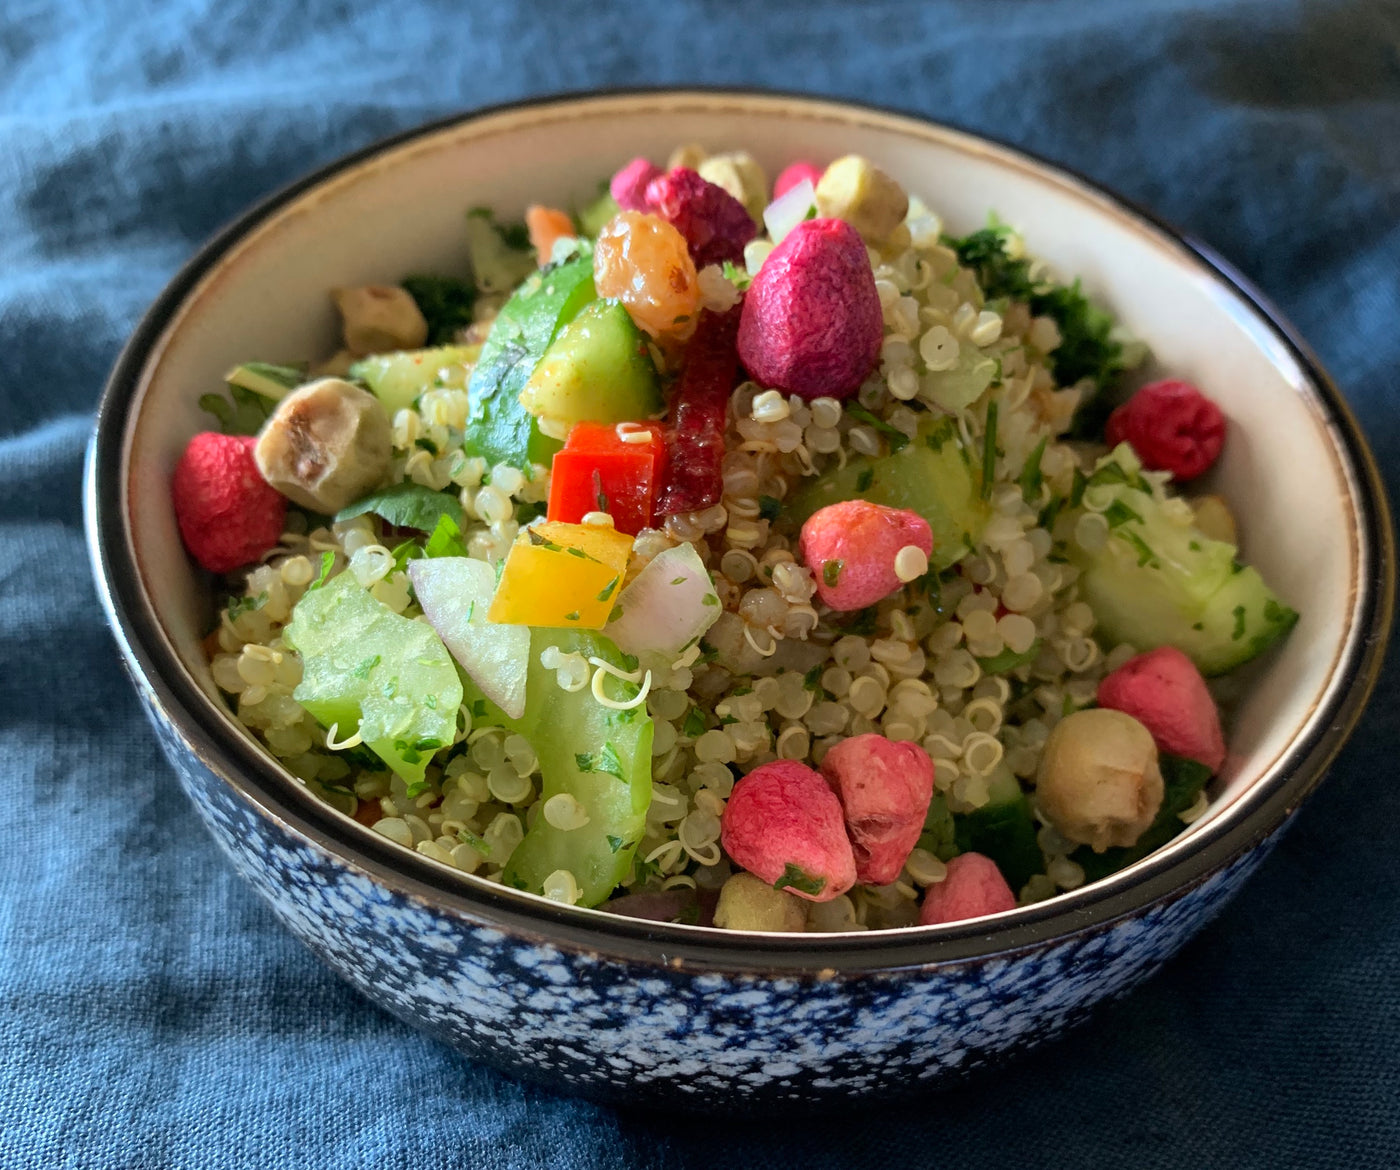 Moroccan Salad with Australian Flavours